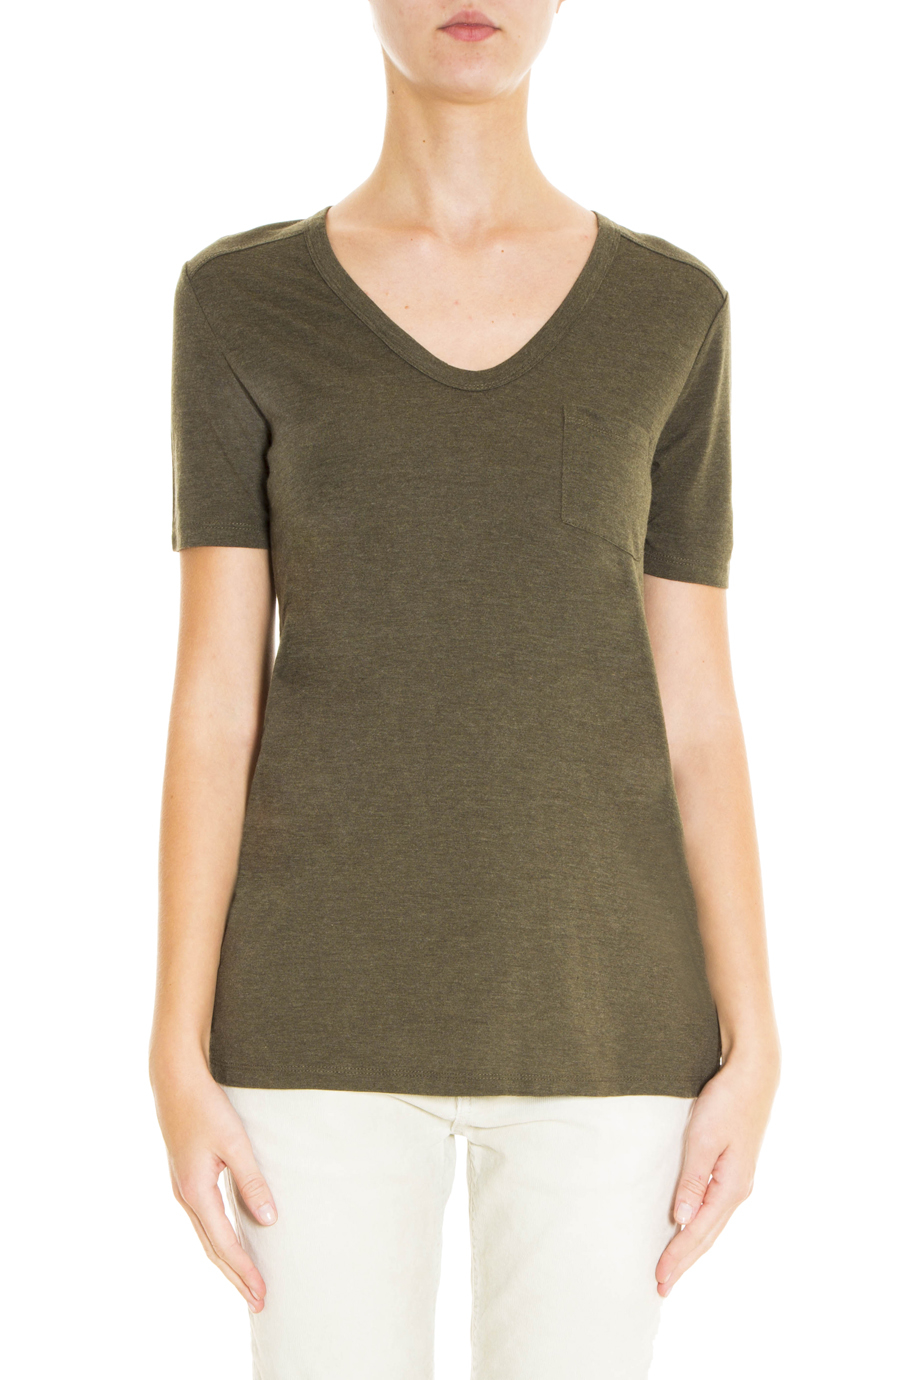 Lyst t by alexander wang classic t shirt in green for Alexander wang t shirt women